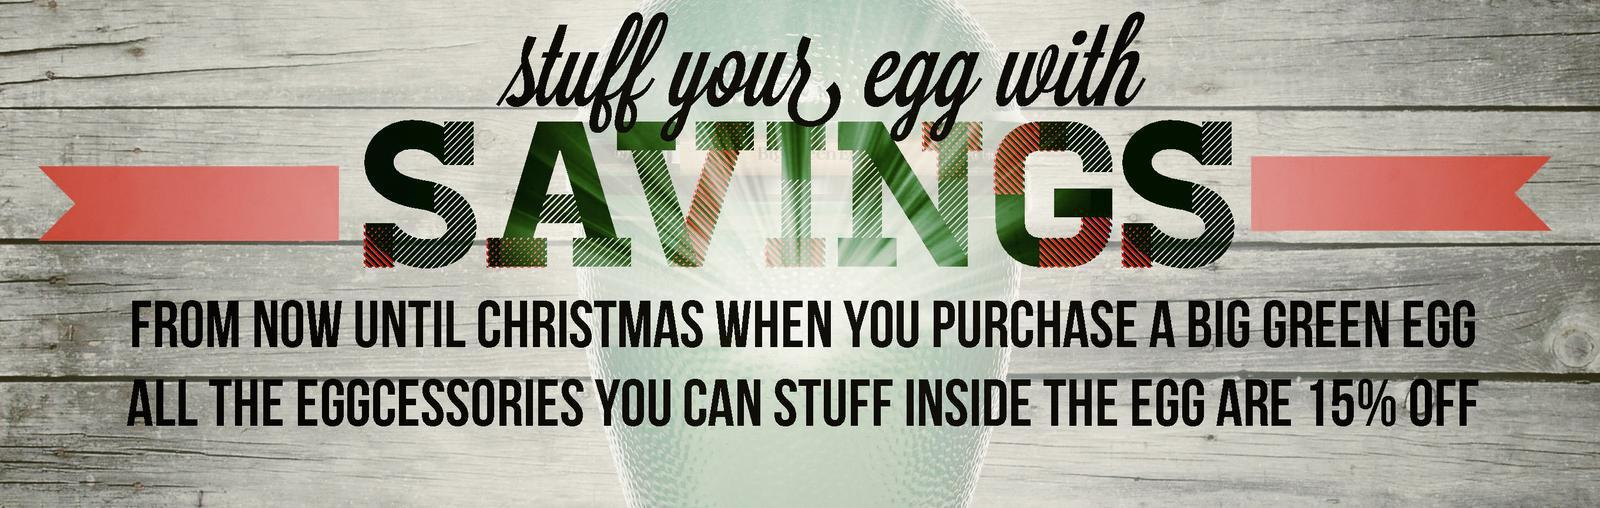 Stuff Your Egg